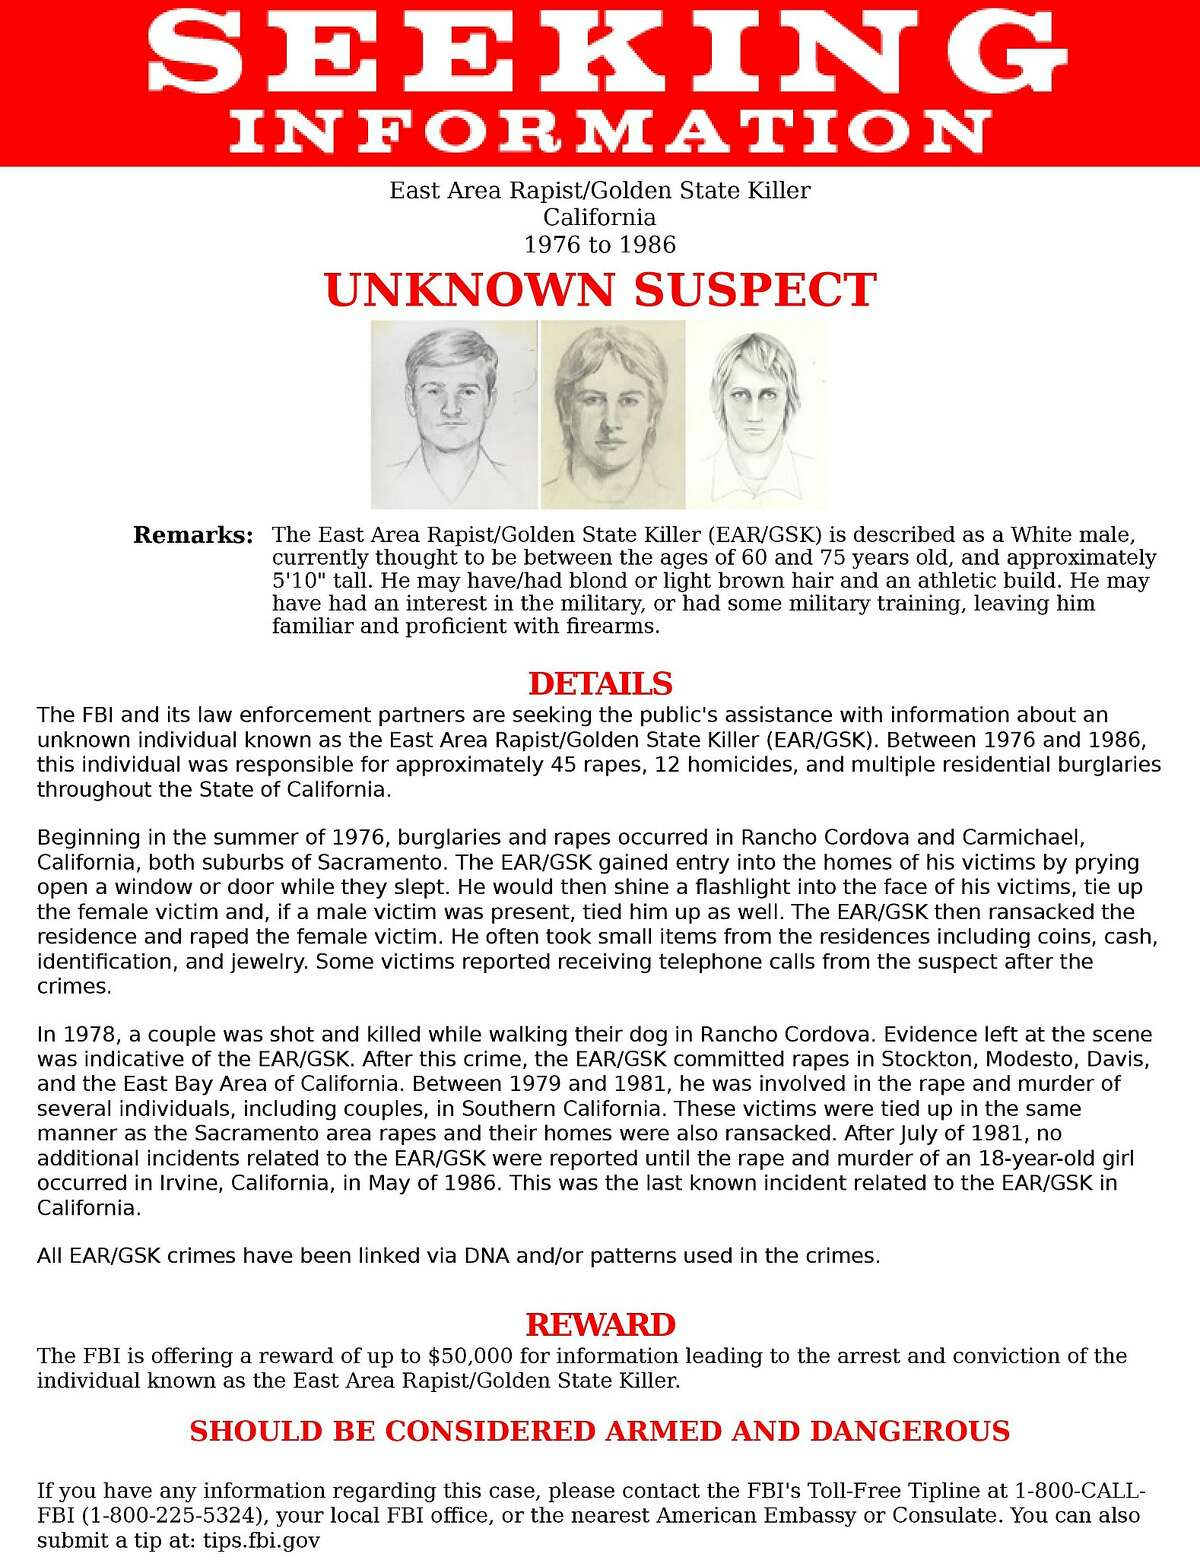 The FBI Sacramento office has released sketches of the East Area Rapist suspect, who is suspected of committing rapes and murders between 1976 and 1986 throughout California.